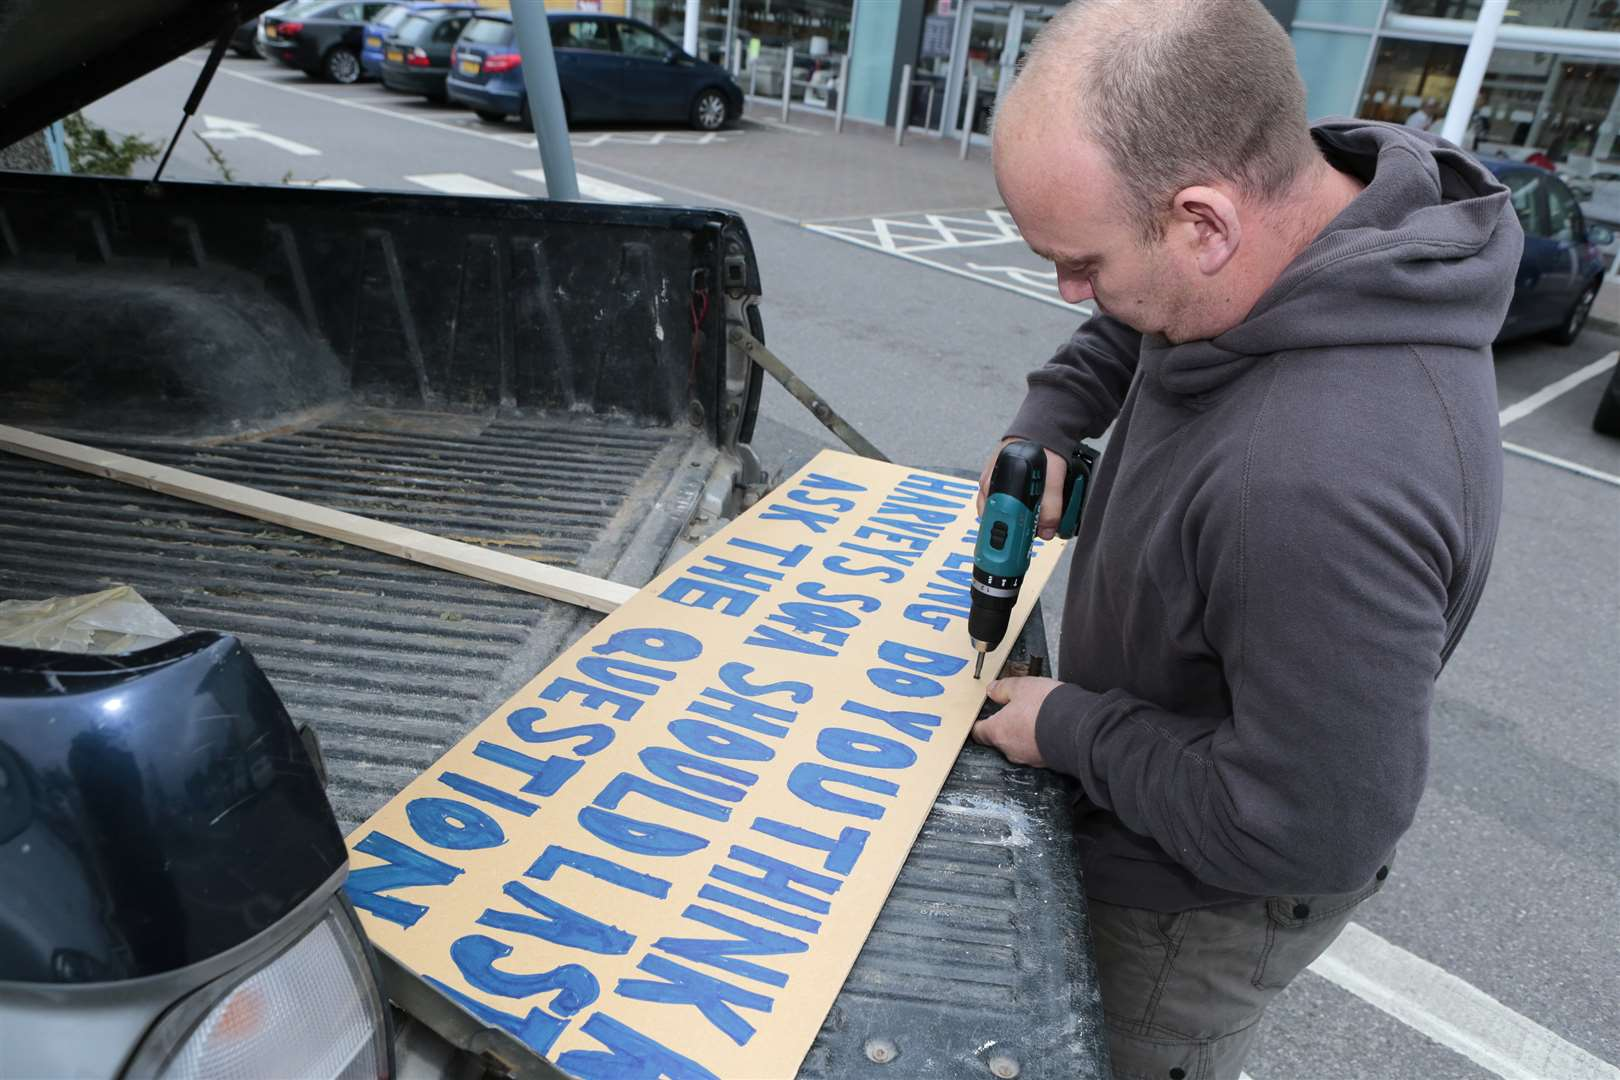 Ian Hayden, from Paddock Wood, staged a protest outside Harveys in Aylesford retail park. Picture by Martin Apps.